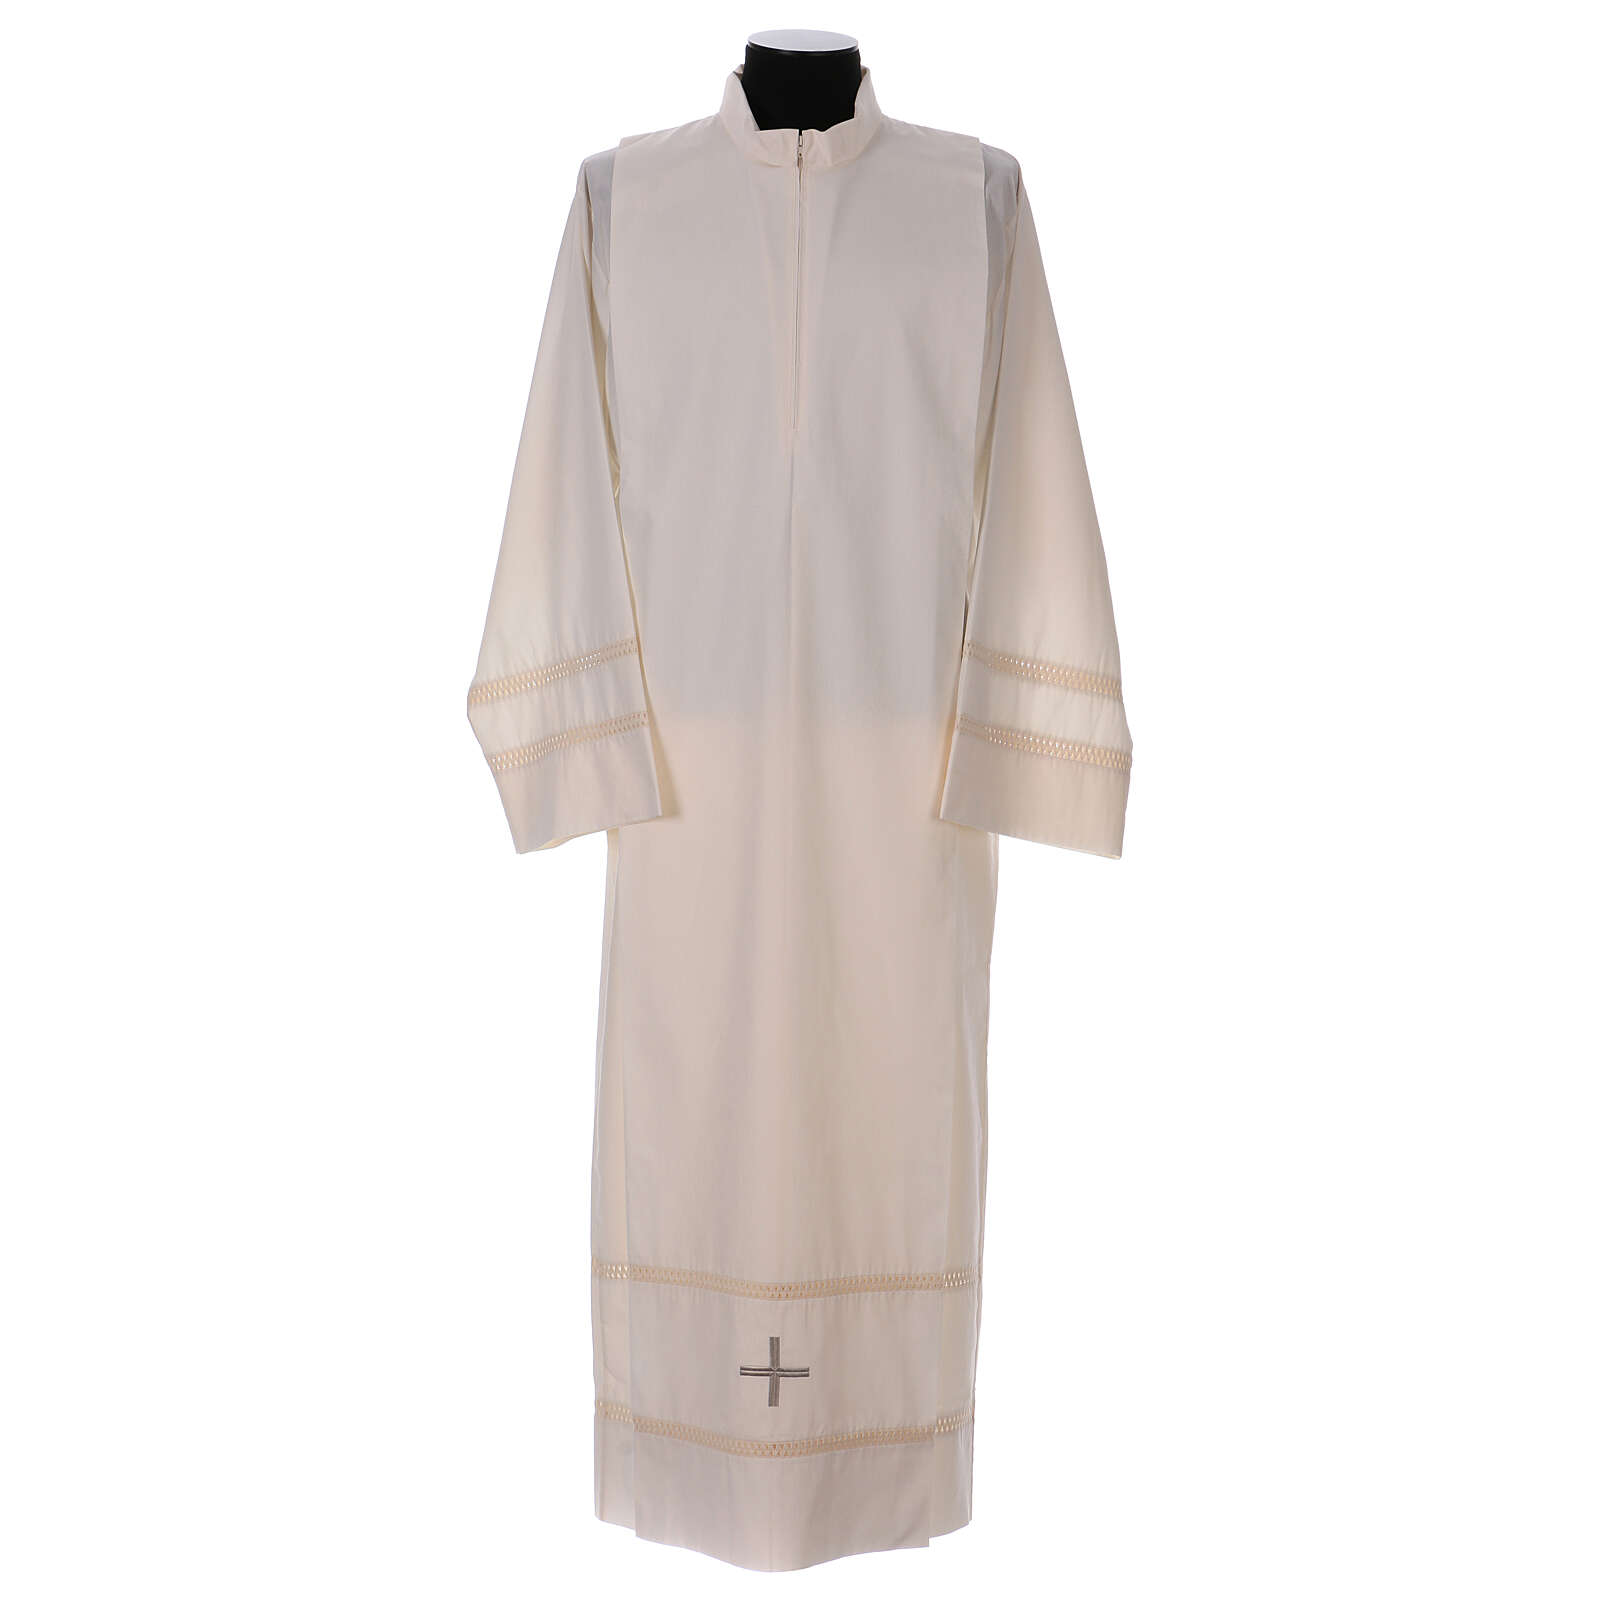 STOCK Ivory alb with cross and interlaced stitching 4